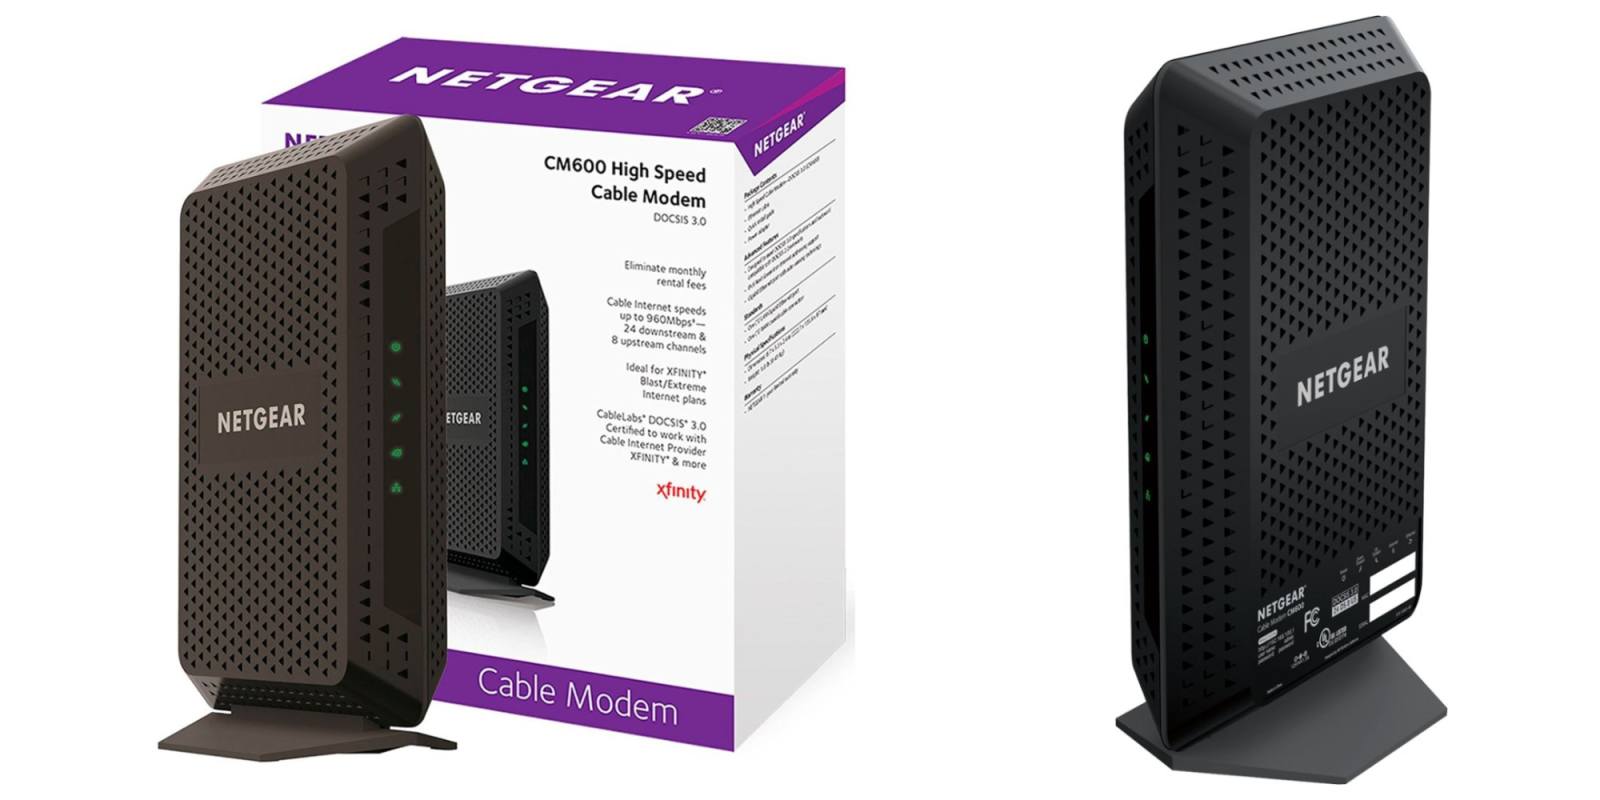 Ditch your rental and score this NETGEAR DOCSIS 3.0 Cable Modem at $60 shipped (Save $30)